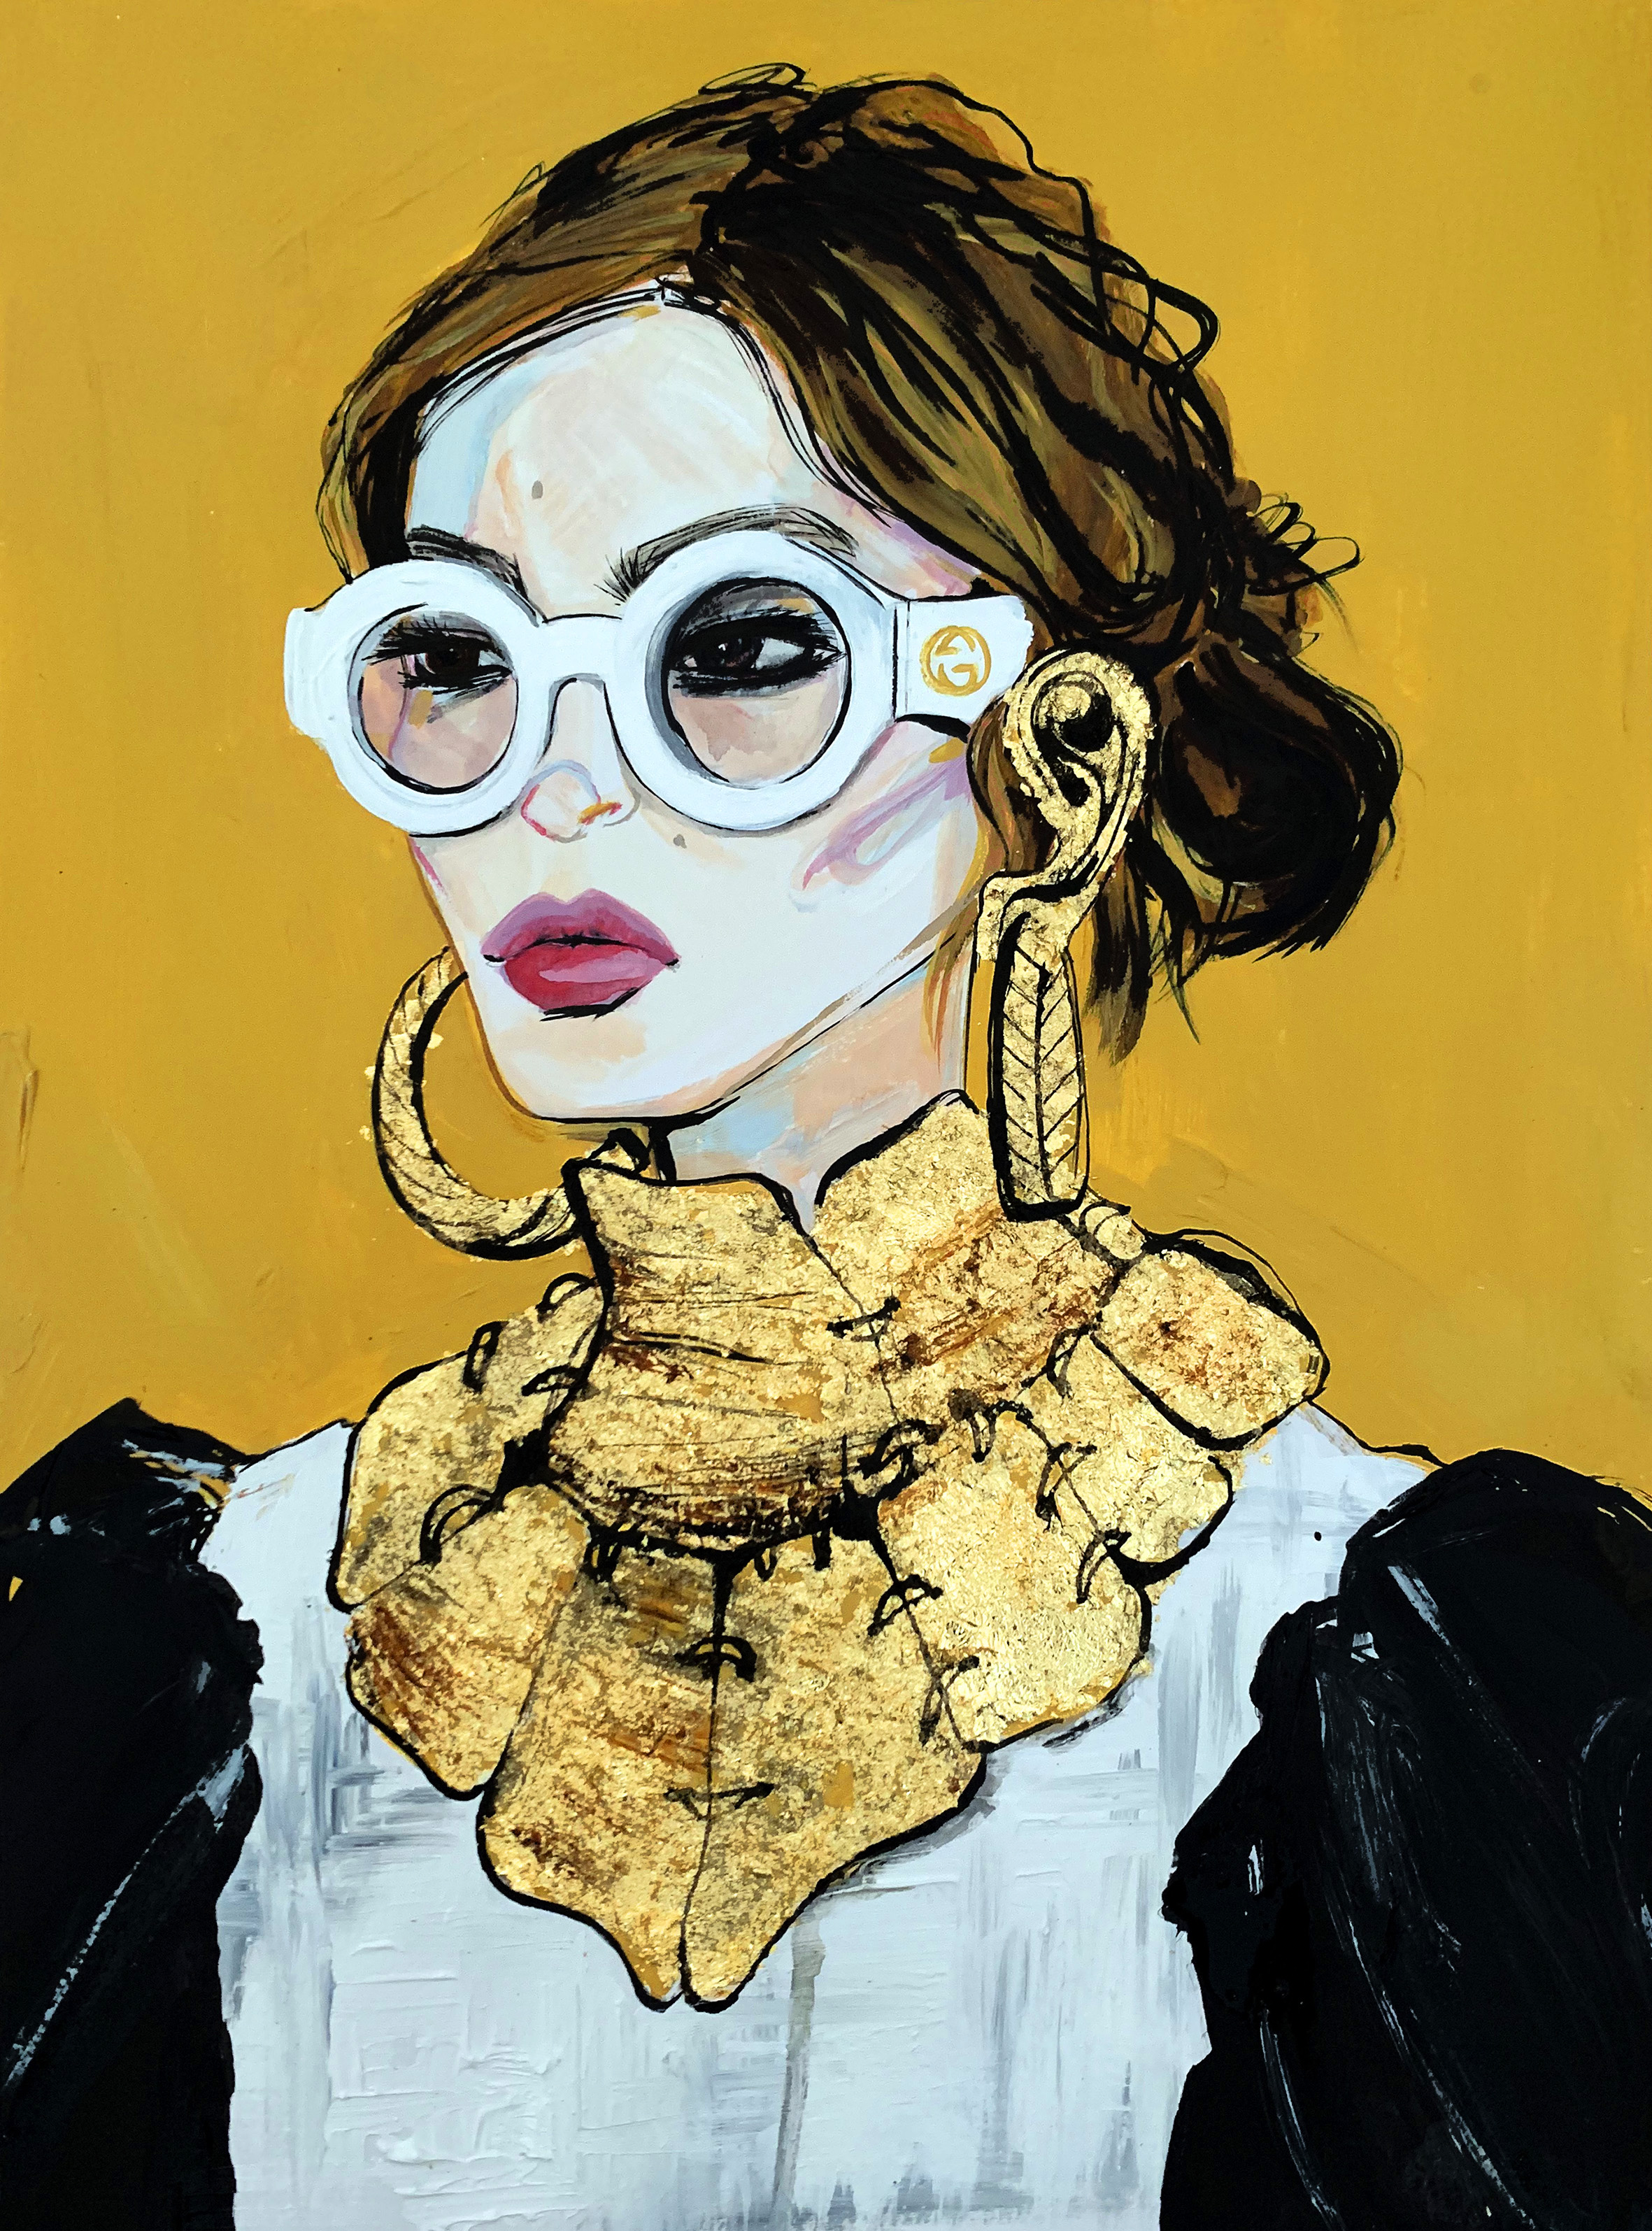 Golden Gucci Girl - Mixed media painting on paper with gold foil29.7x41cm£400